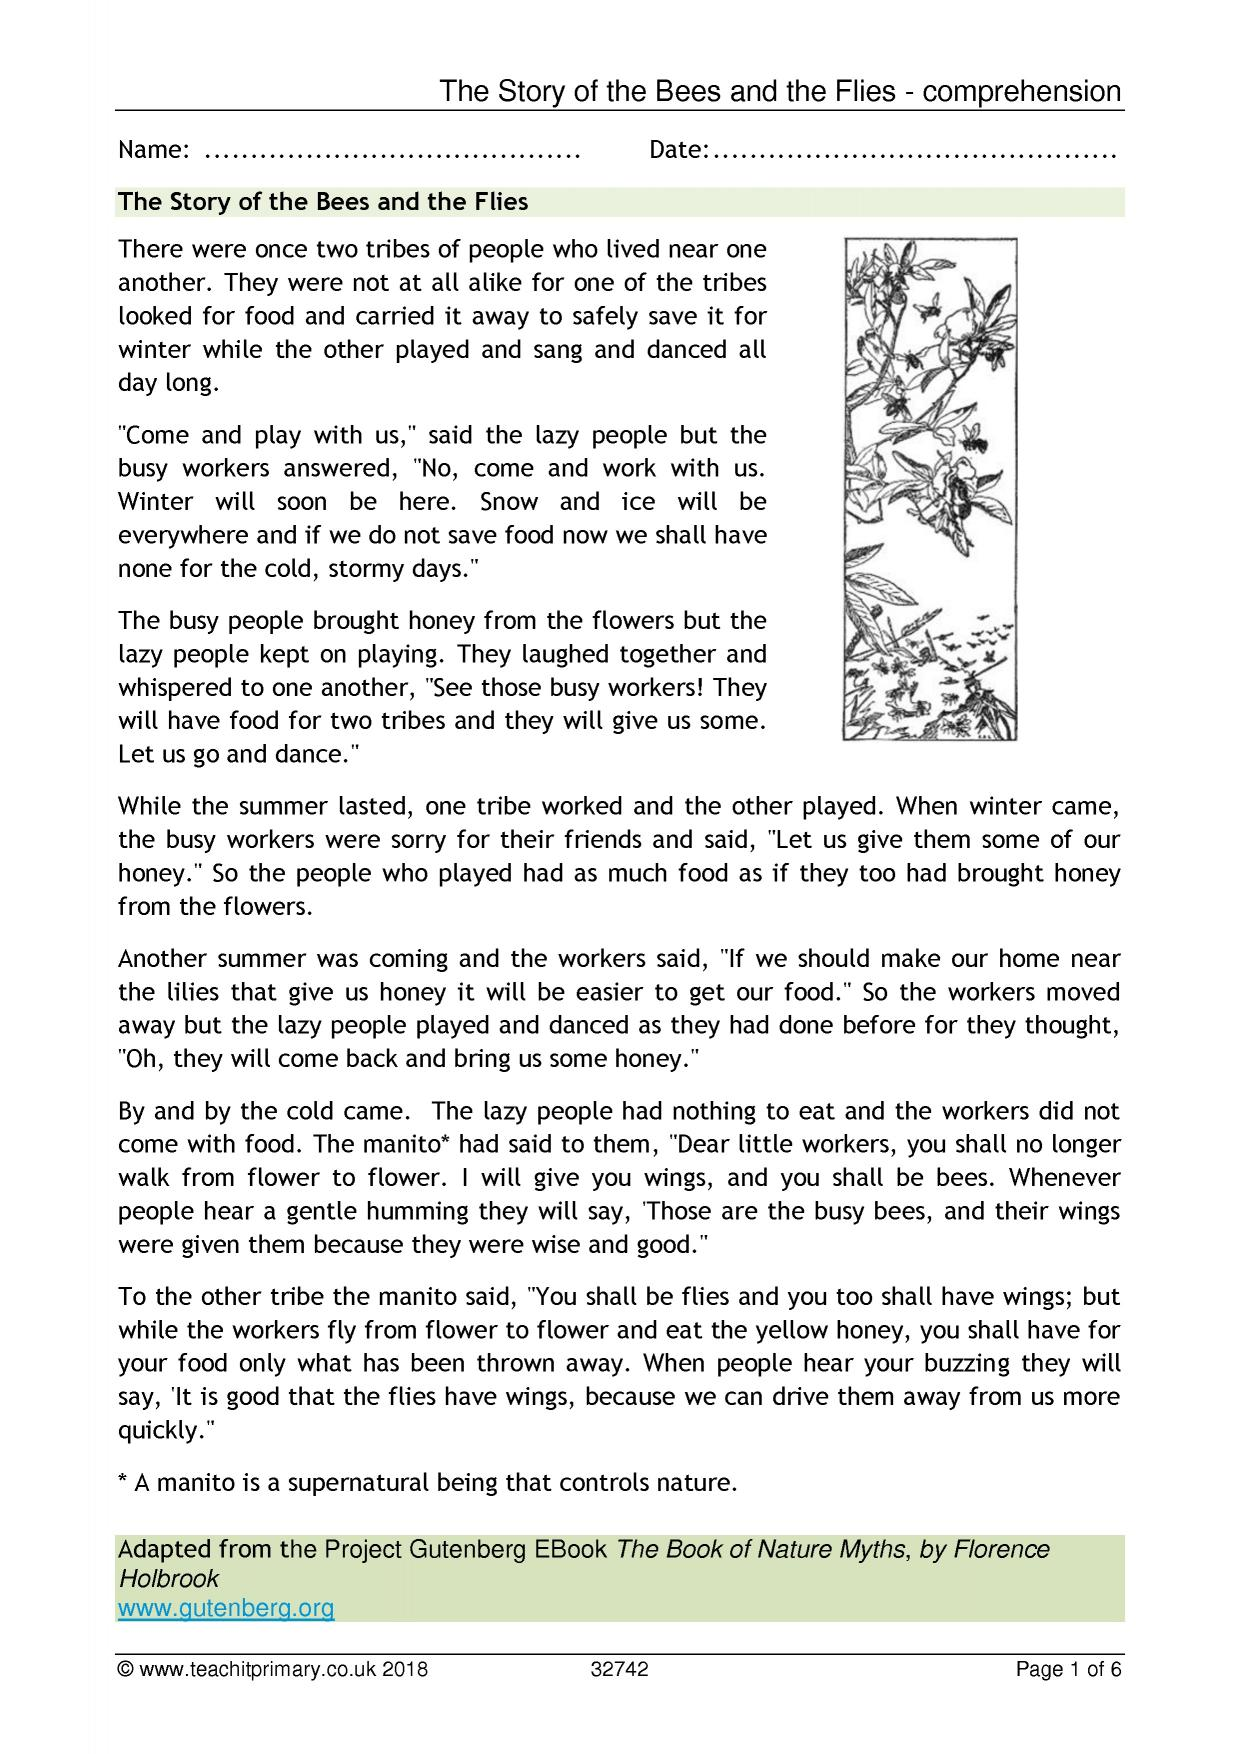 - The Story Of The Bees And The Flies - Comprehension